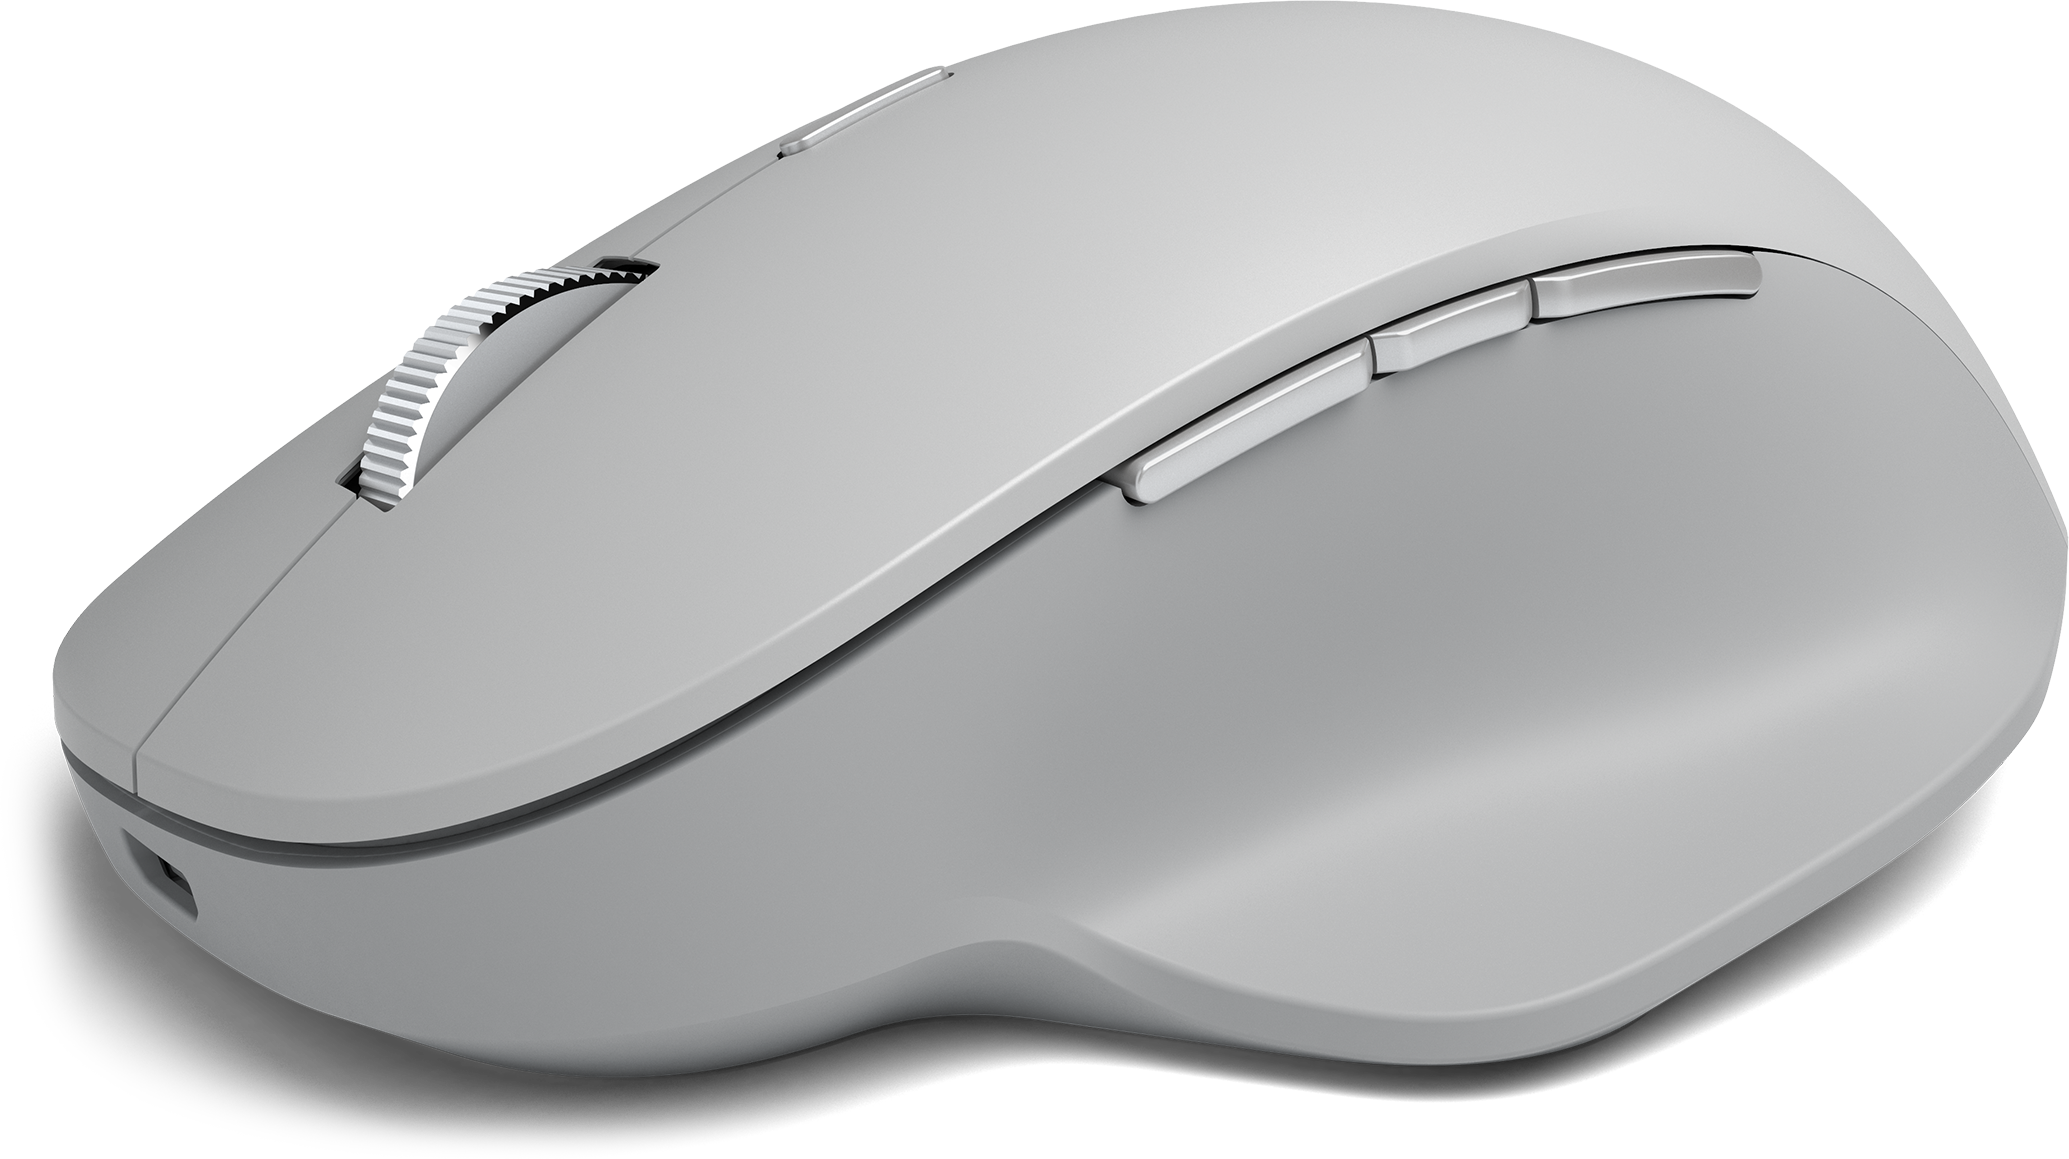 msft-mouse.png